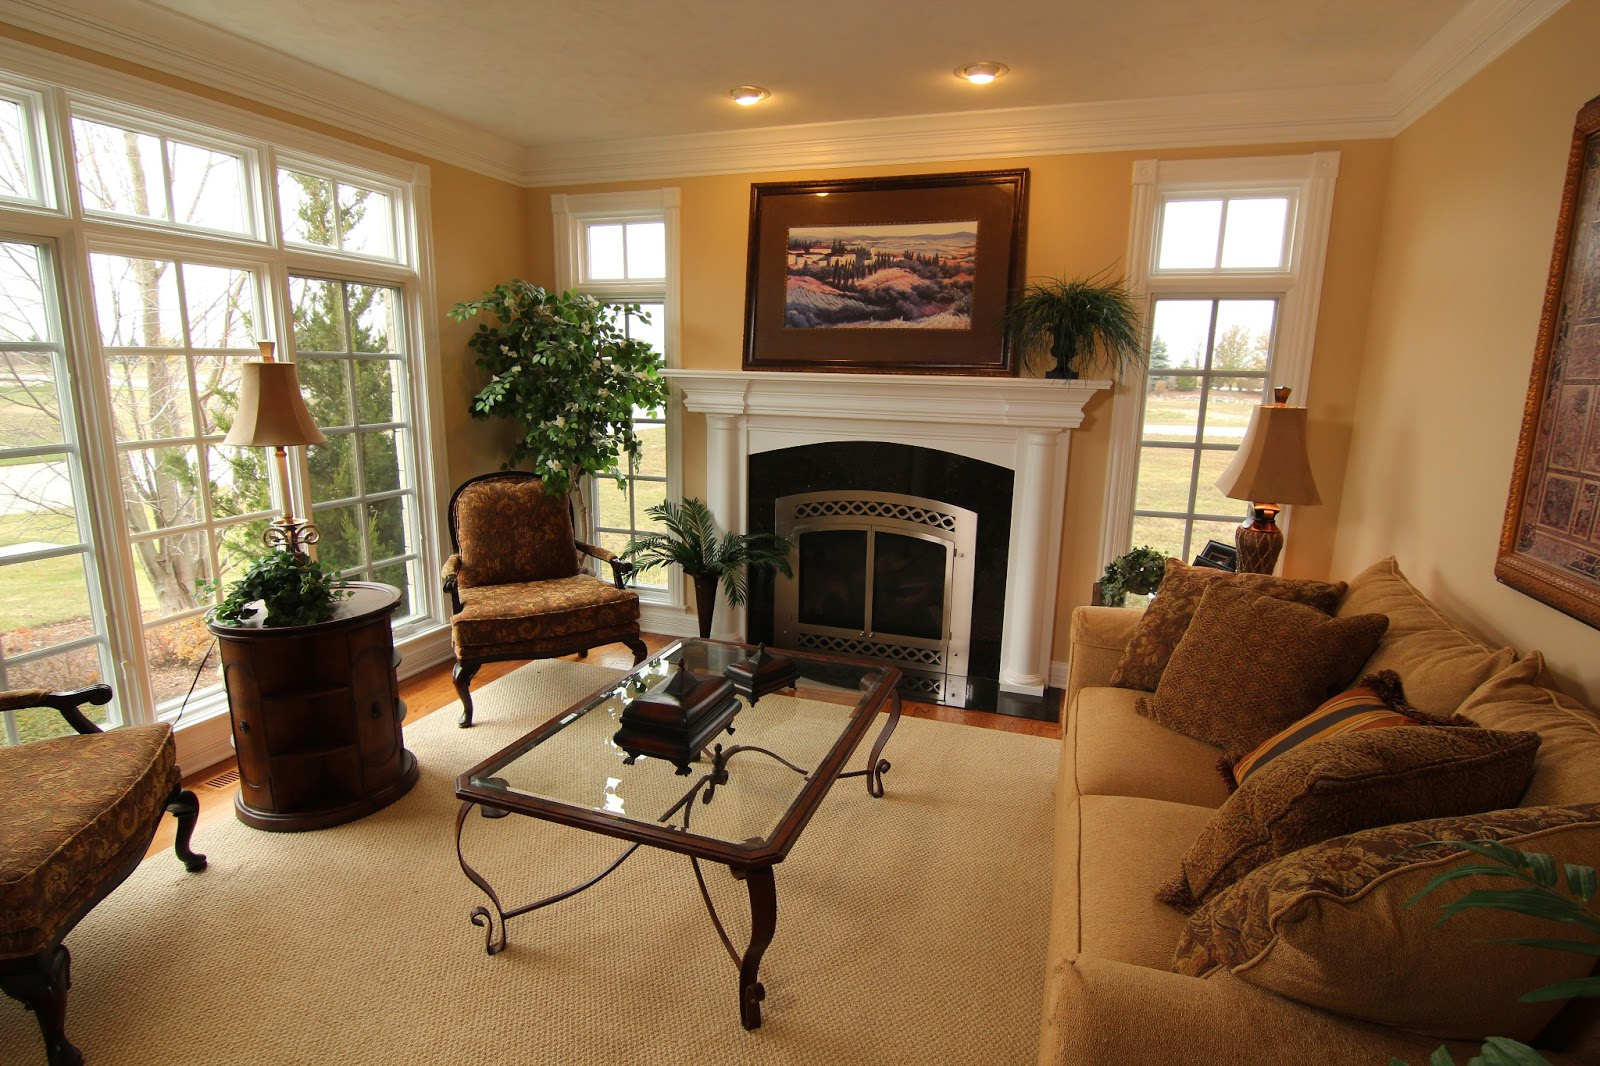 Cozy fireplace decor tips for keeping warm in style for Warm decorating ideas living rooms